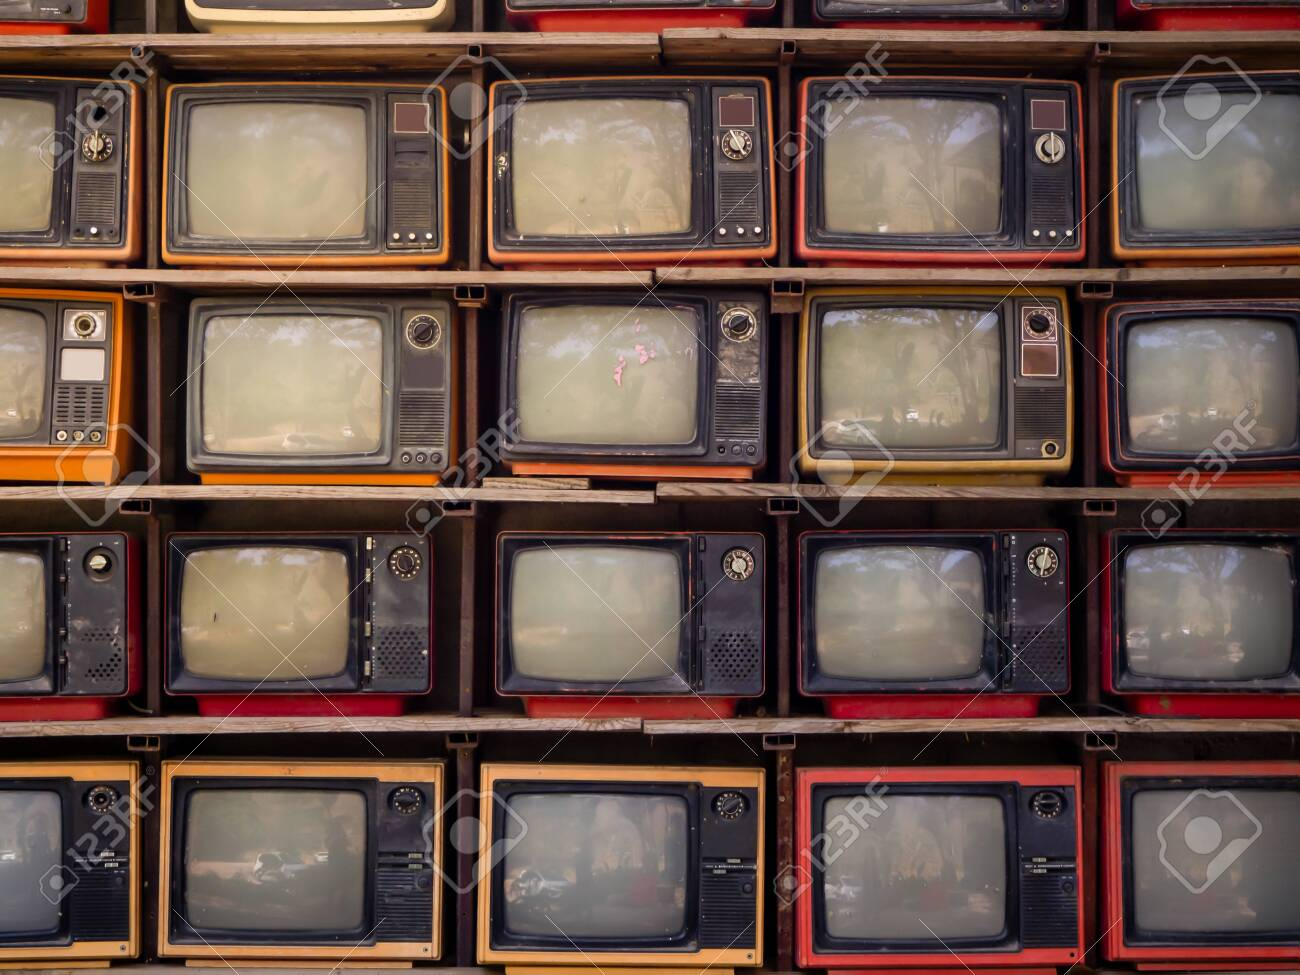 The Pattern wall of pile old retro TV bachground - 138351746